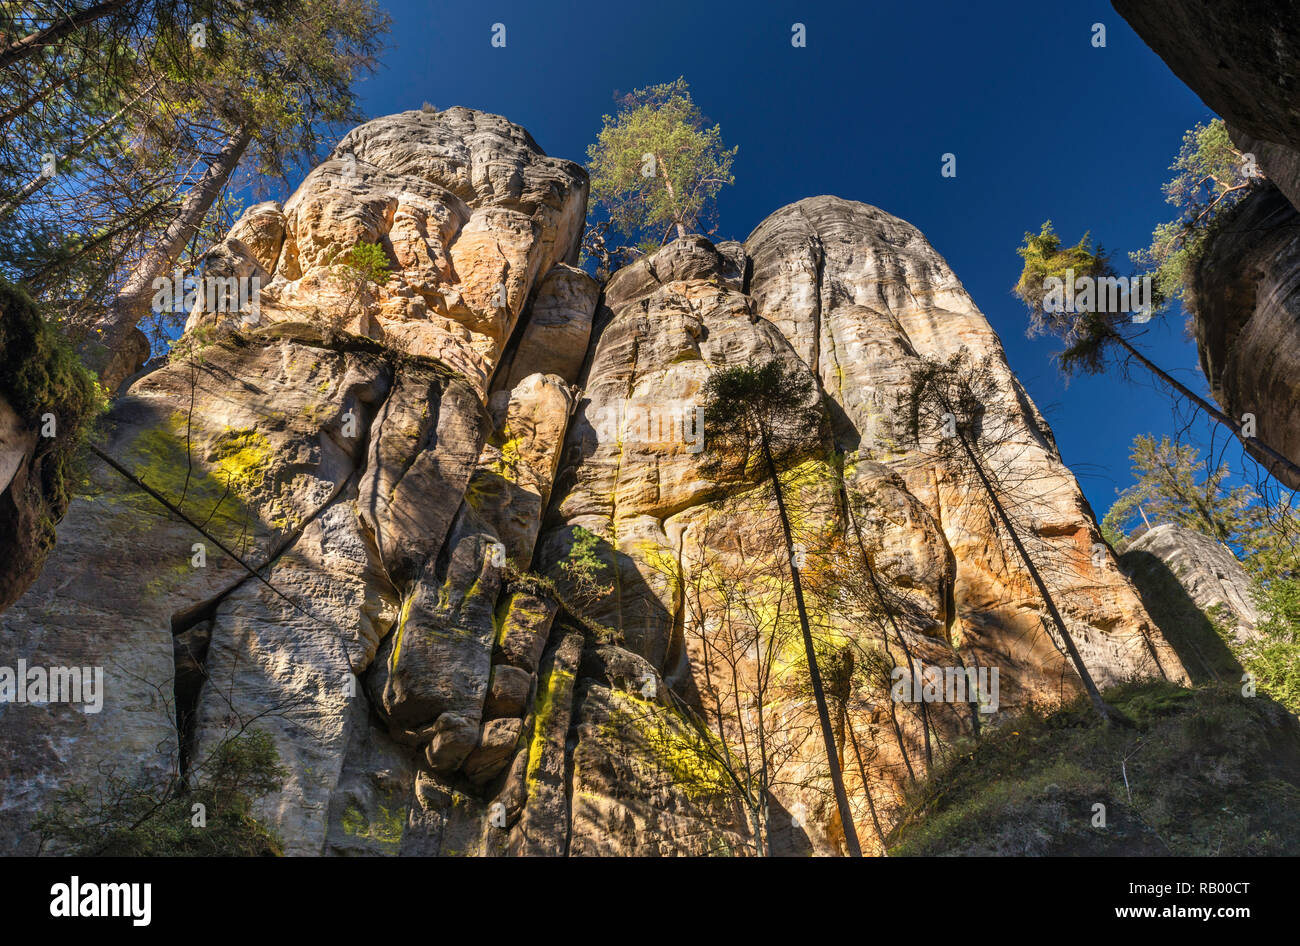 Rock towers at Adršpach Rocks, Adršpach-Teplice Rocks National Nature Reserve, Central Sudetes, Bohemia, Czech Republic - Stock Image